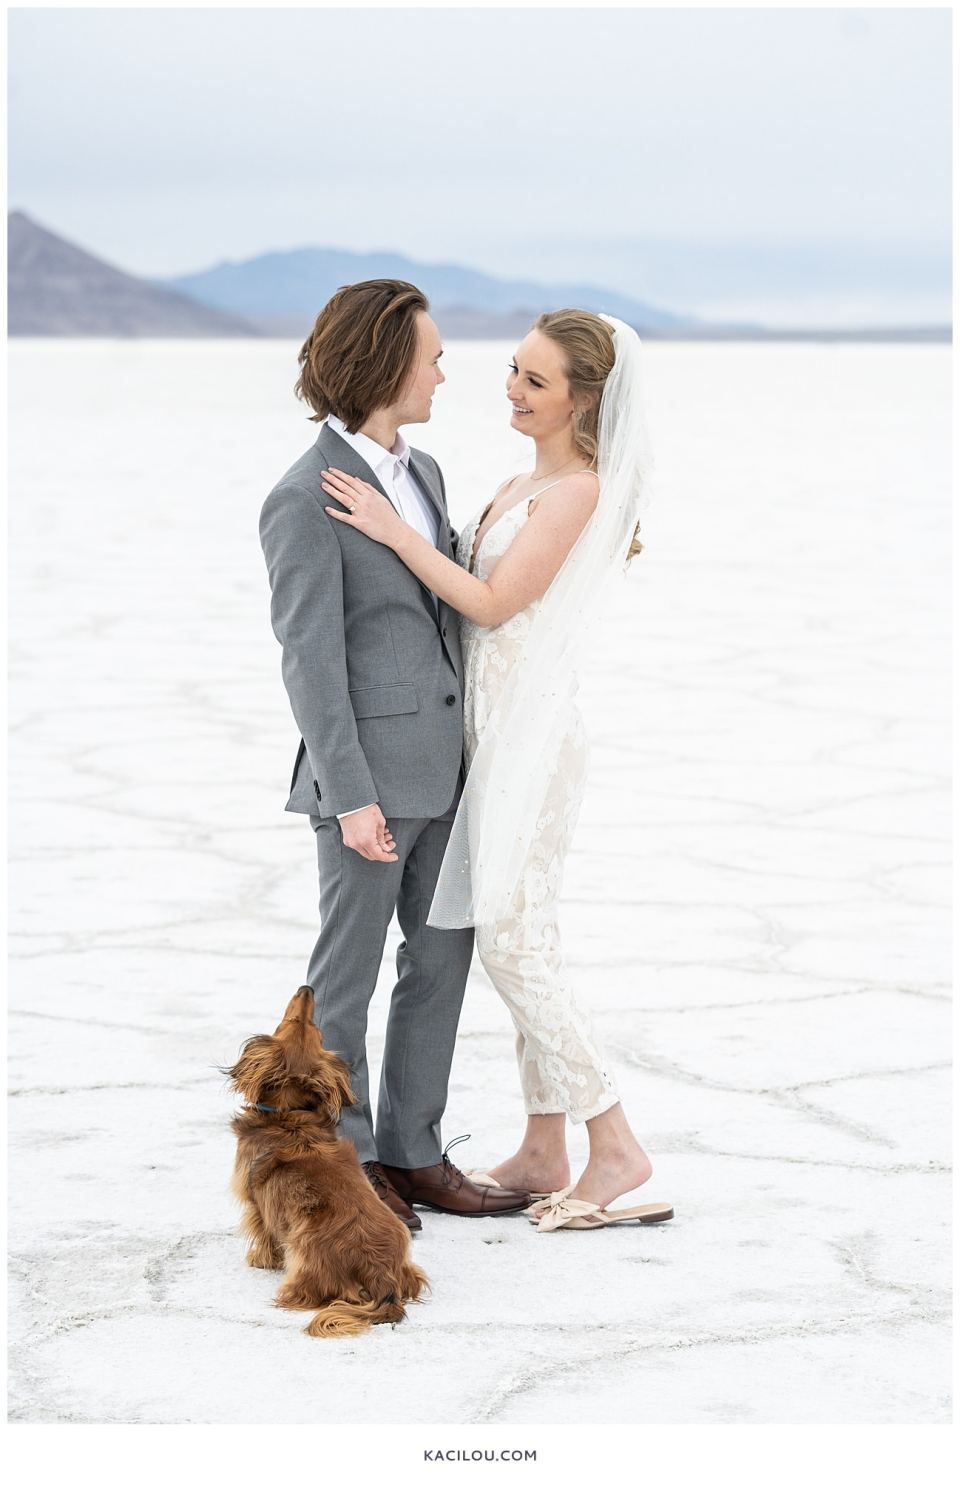 utah elopement photographer kaci lou photography bonneville salt flats sneak peek photos for kylie and max-12.jpg